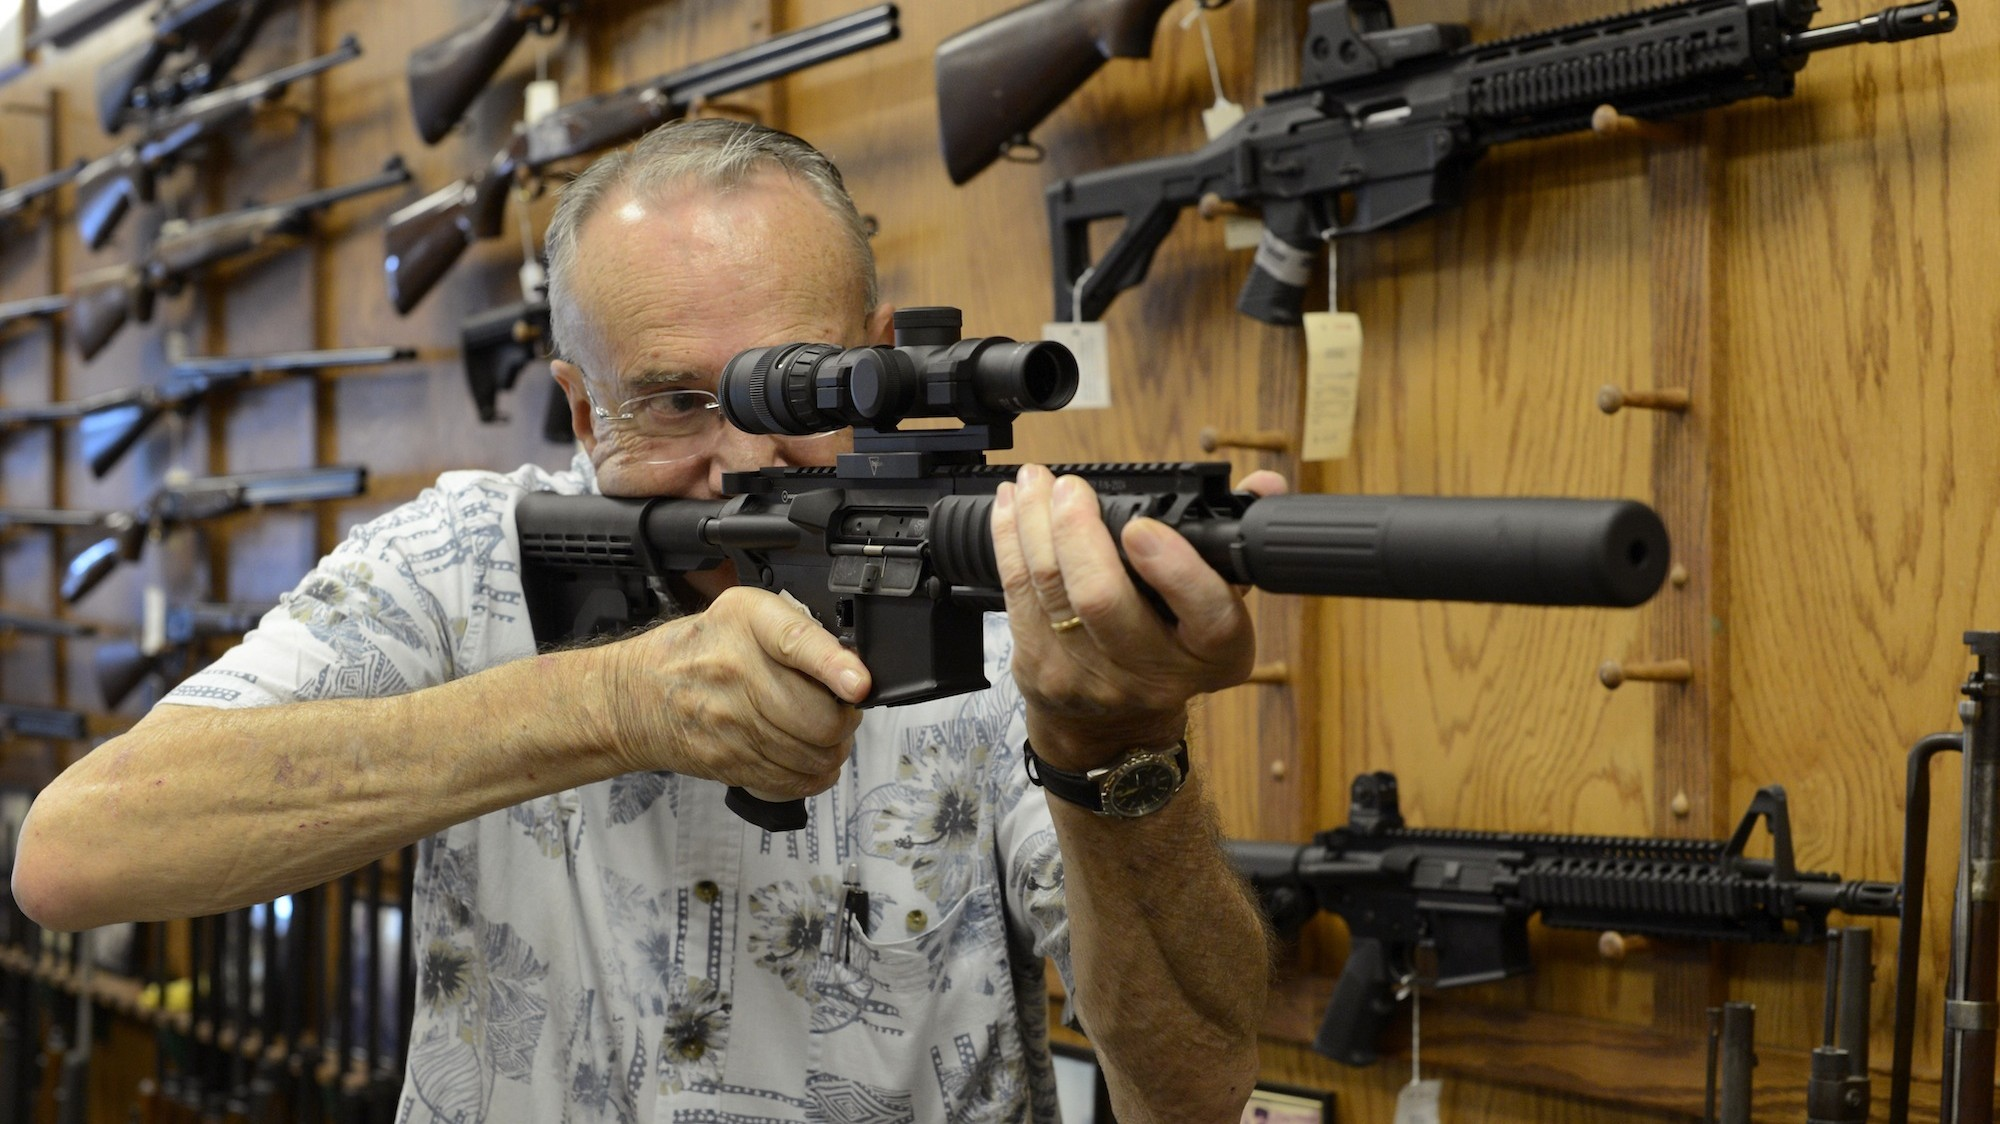 The Supreme Court just cleared the way for more assault rifle bans